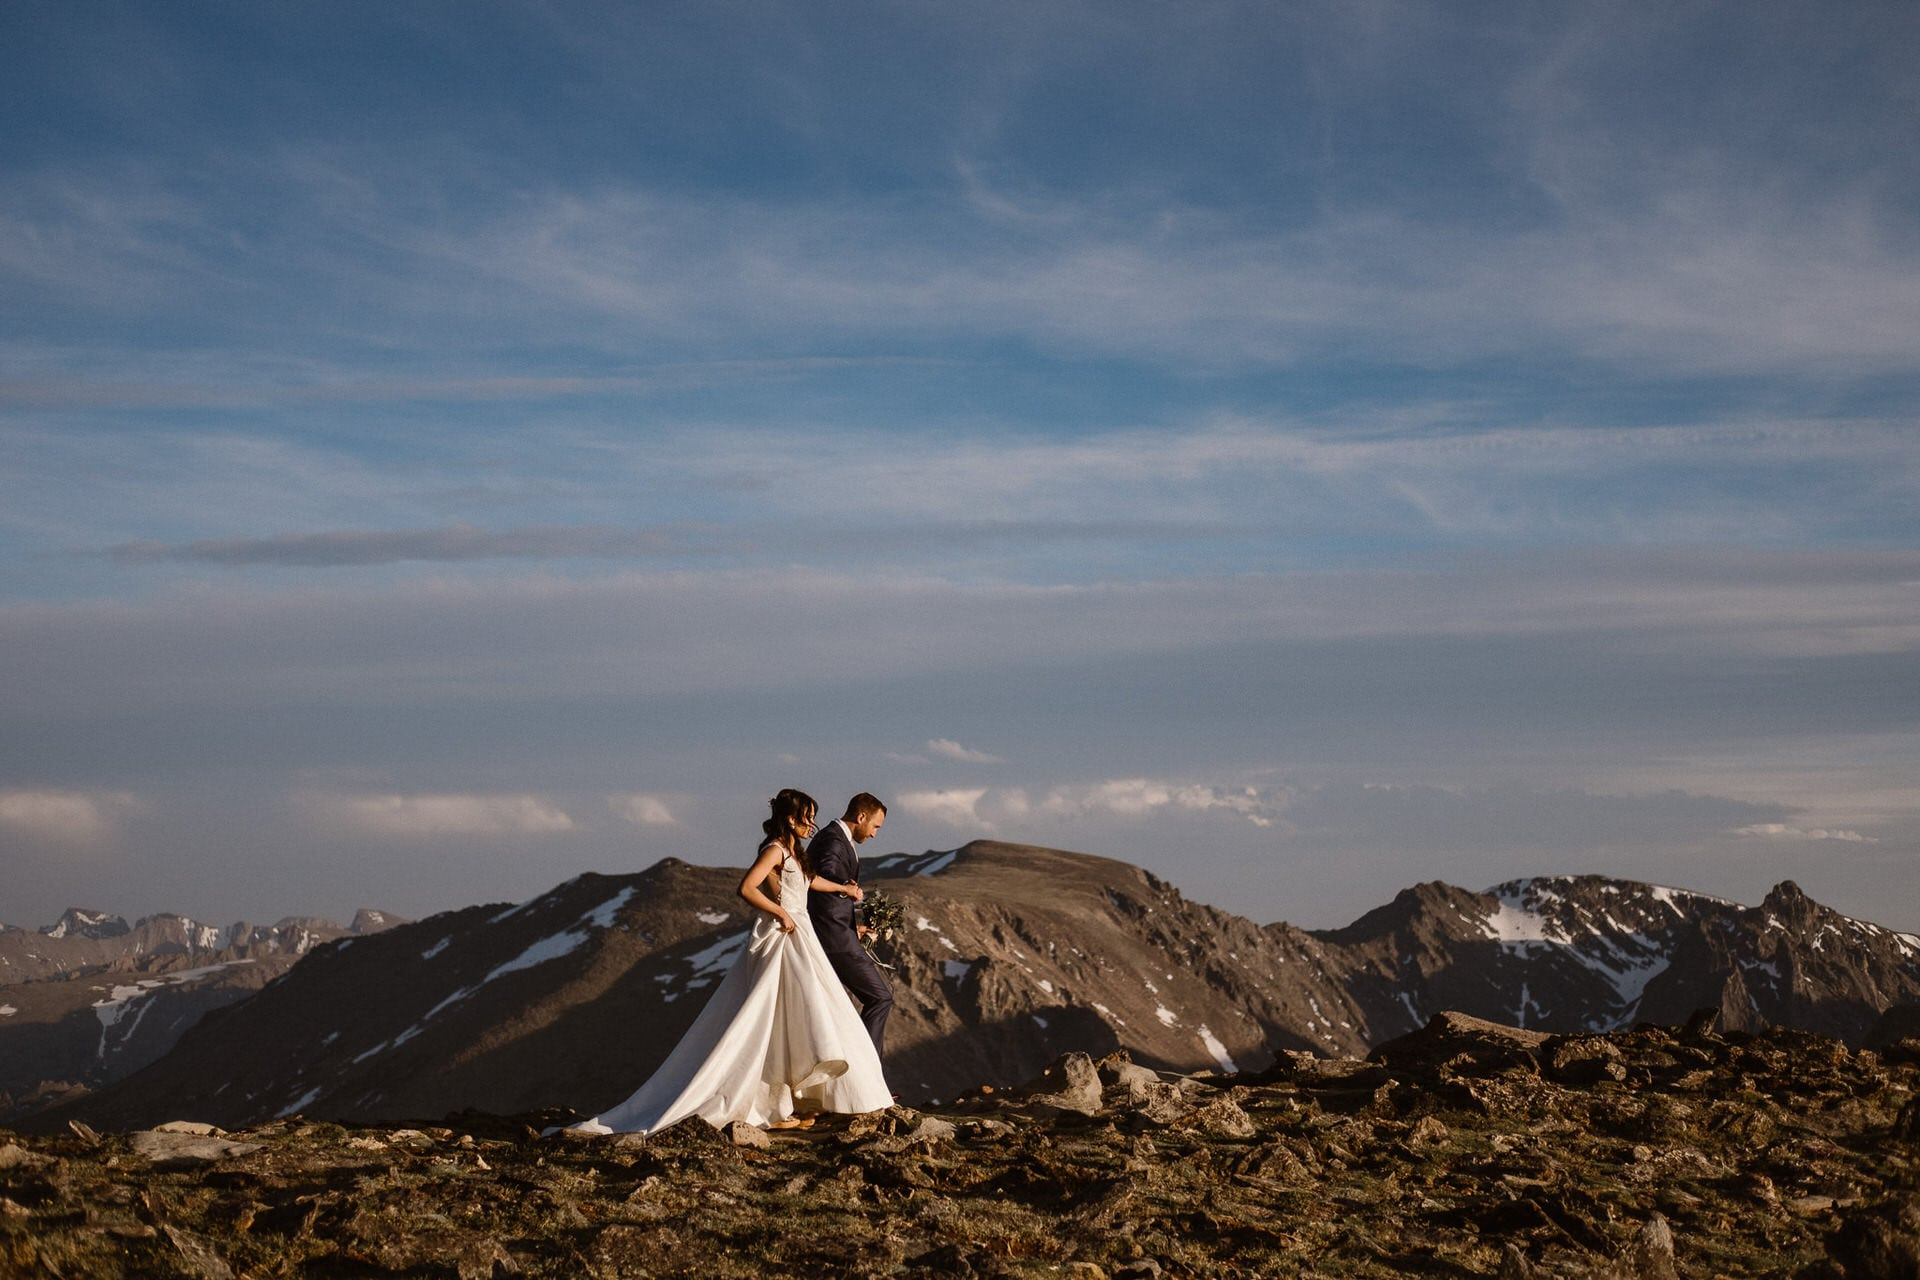 Bride and groom in the Rocky Mountains.